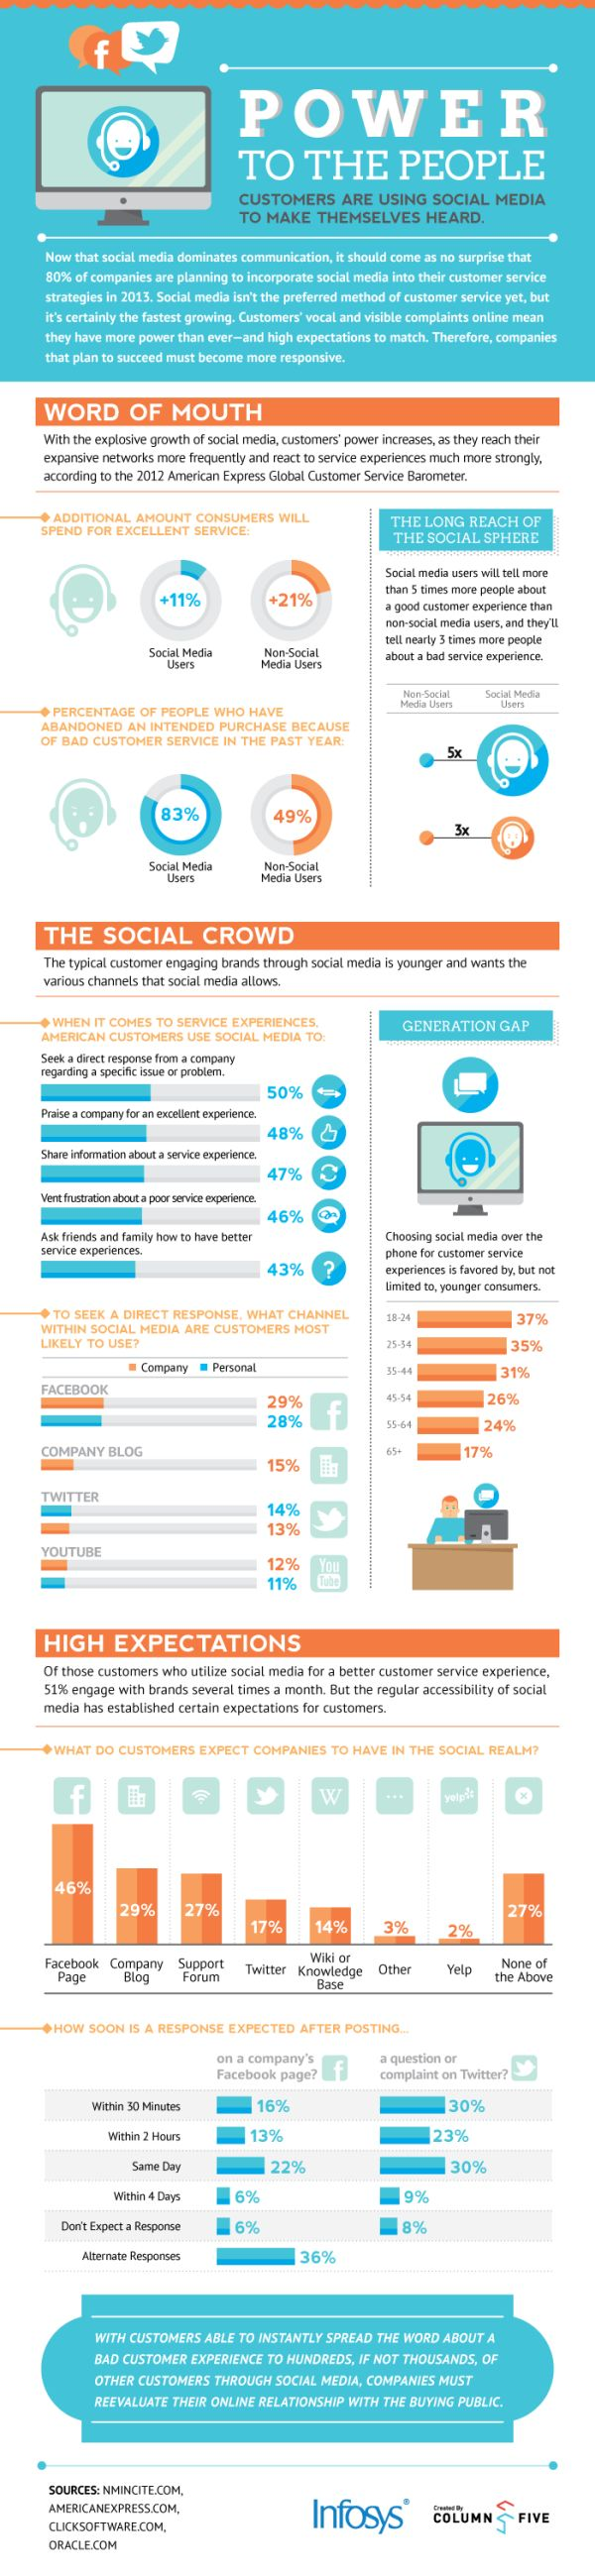 Social Media Is The Fastest Growing Method Of Customer Service. #Infographic: People Infographic, Infographic Socialmedia,  Website, Social Media, Web Site, Media Infographic, Custom Service, The Client, Social Custom